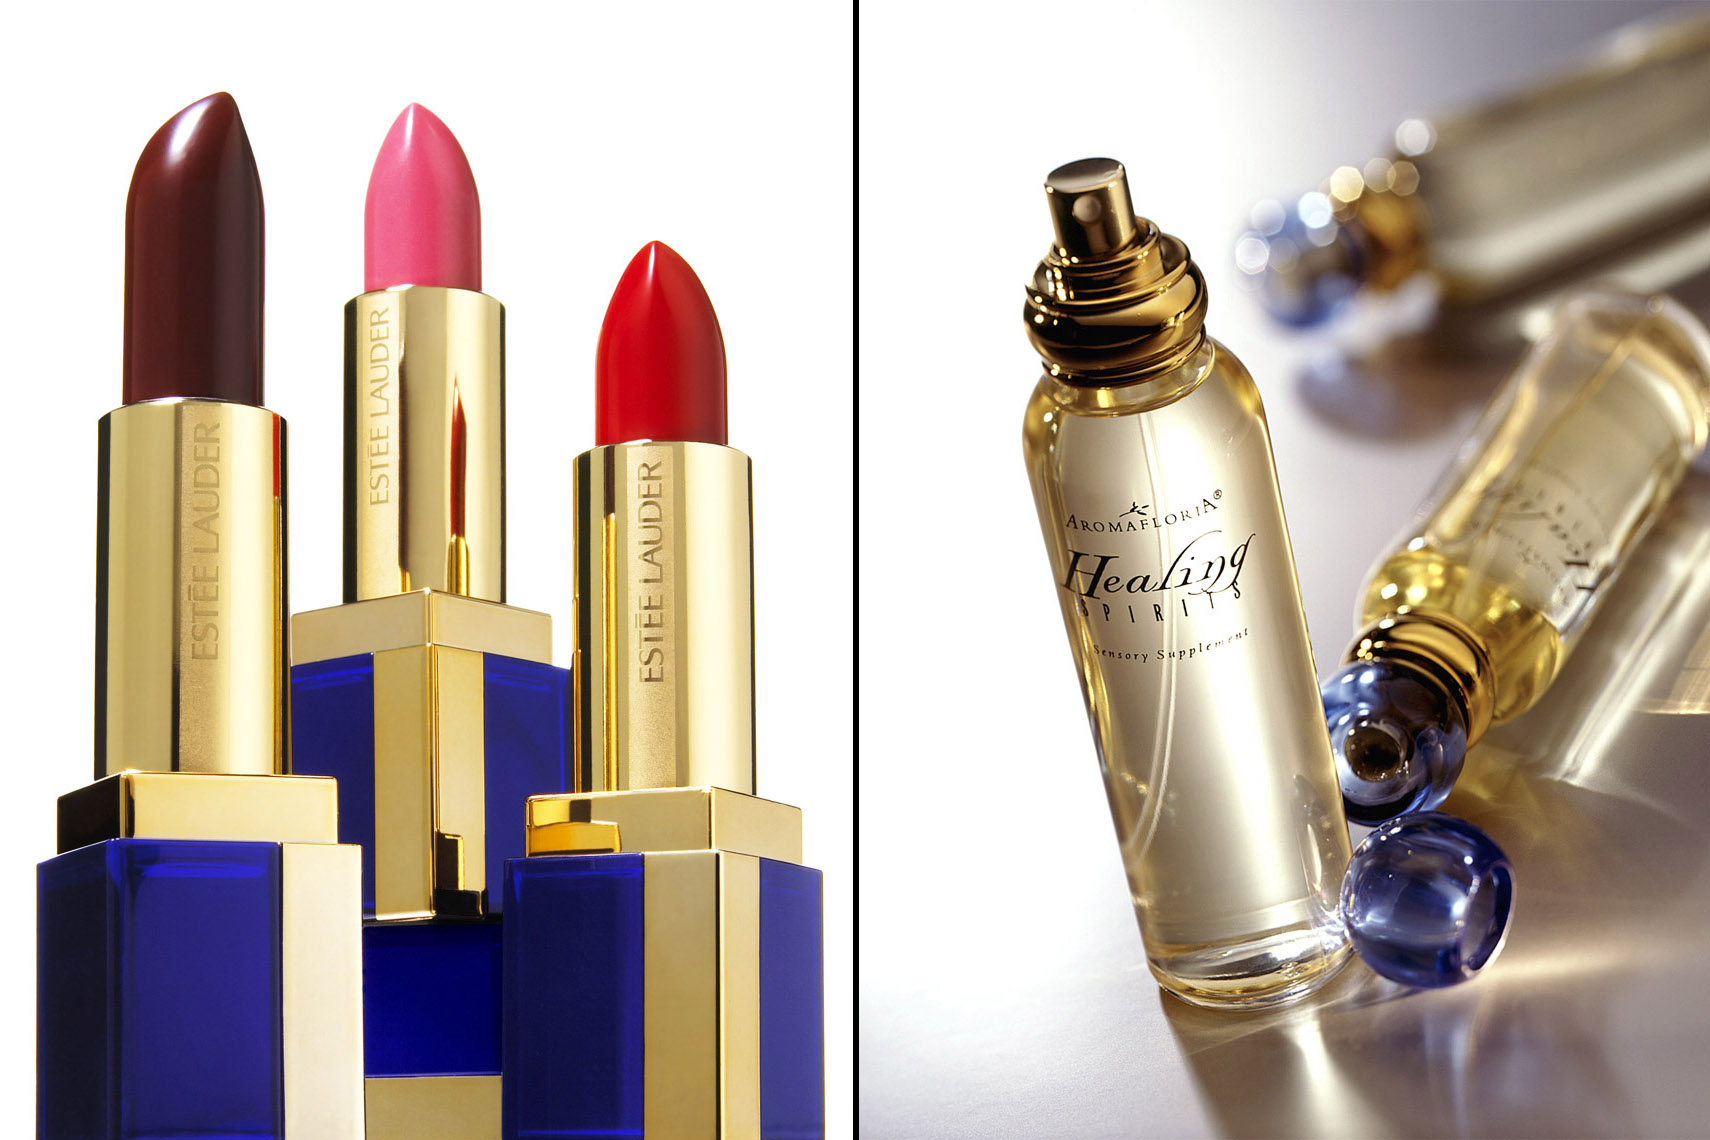 Cosmetics Still Life, Lipsticks by Estee Lauder